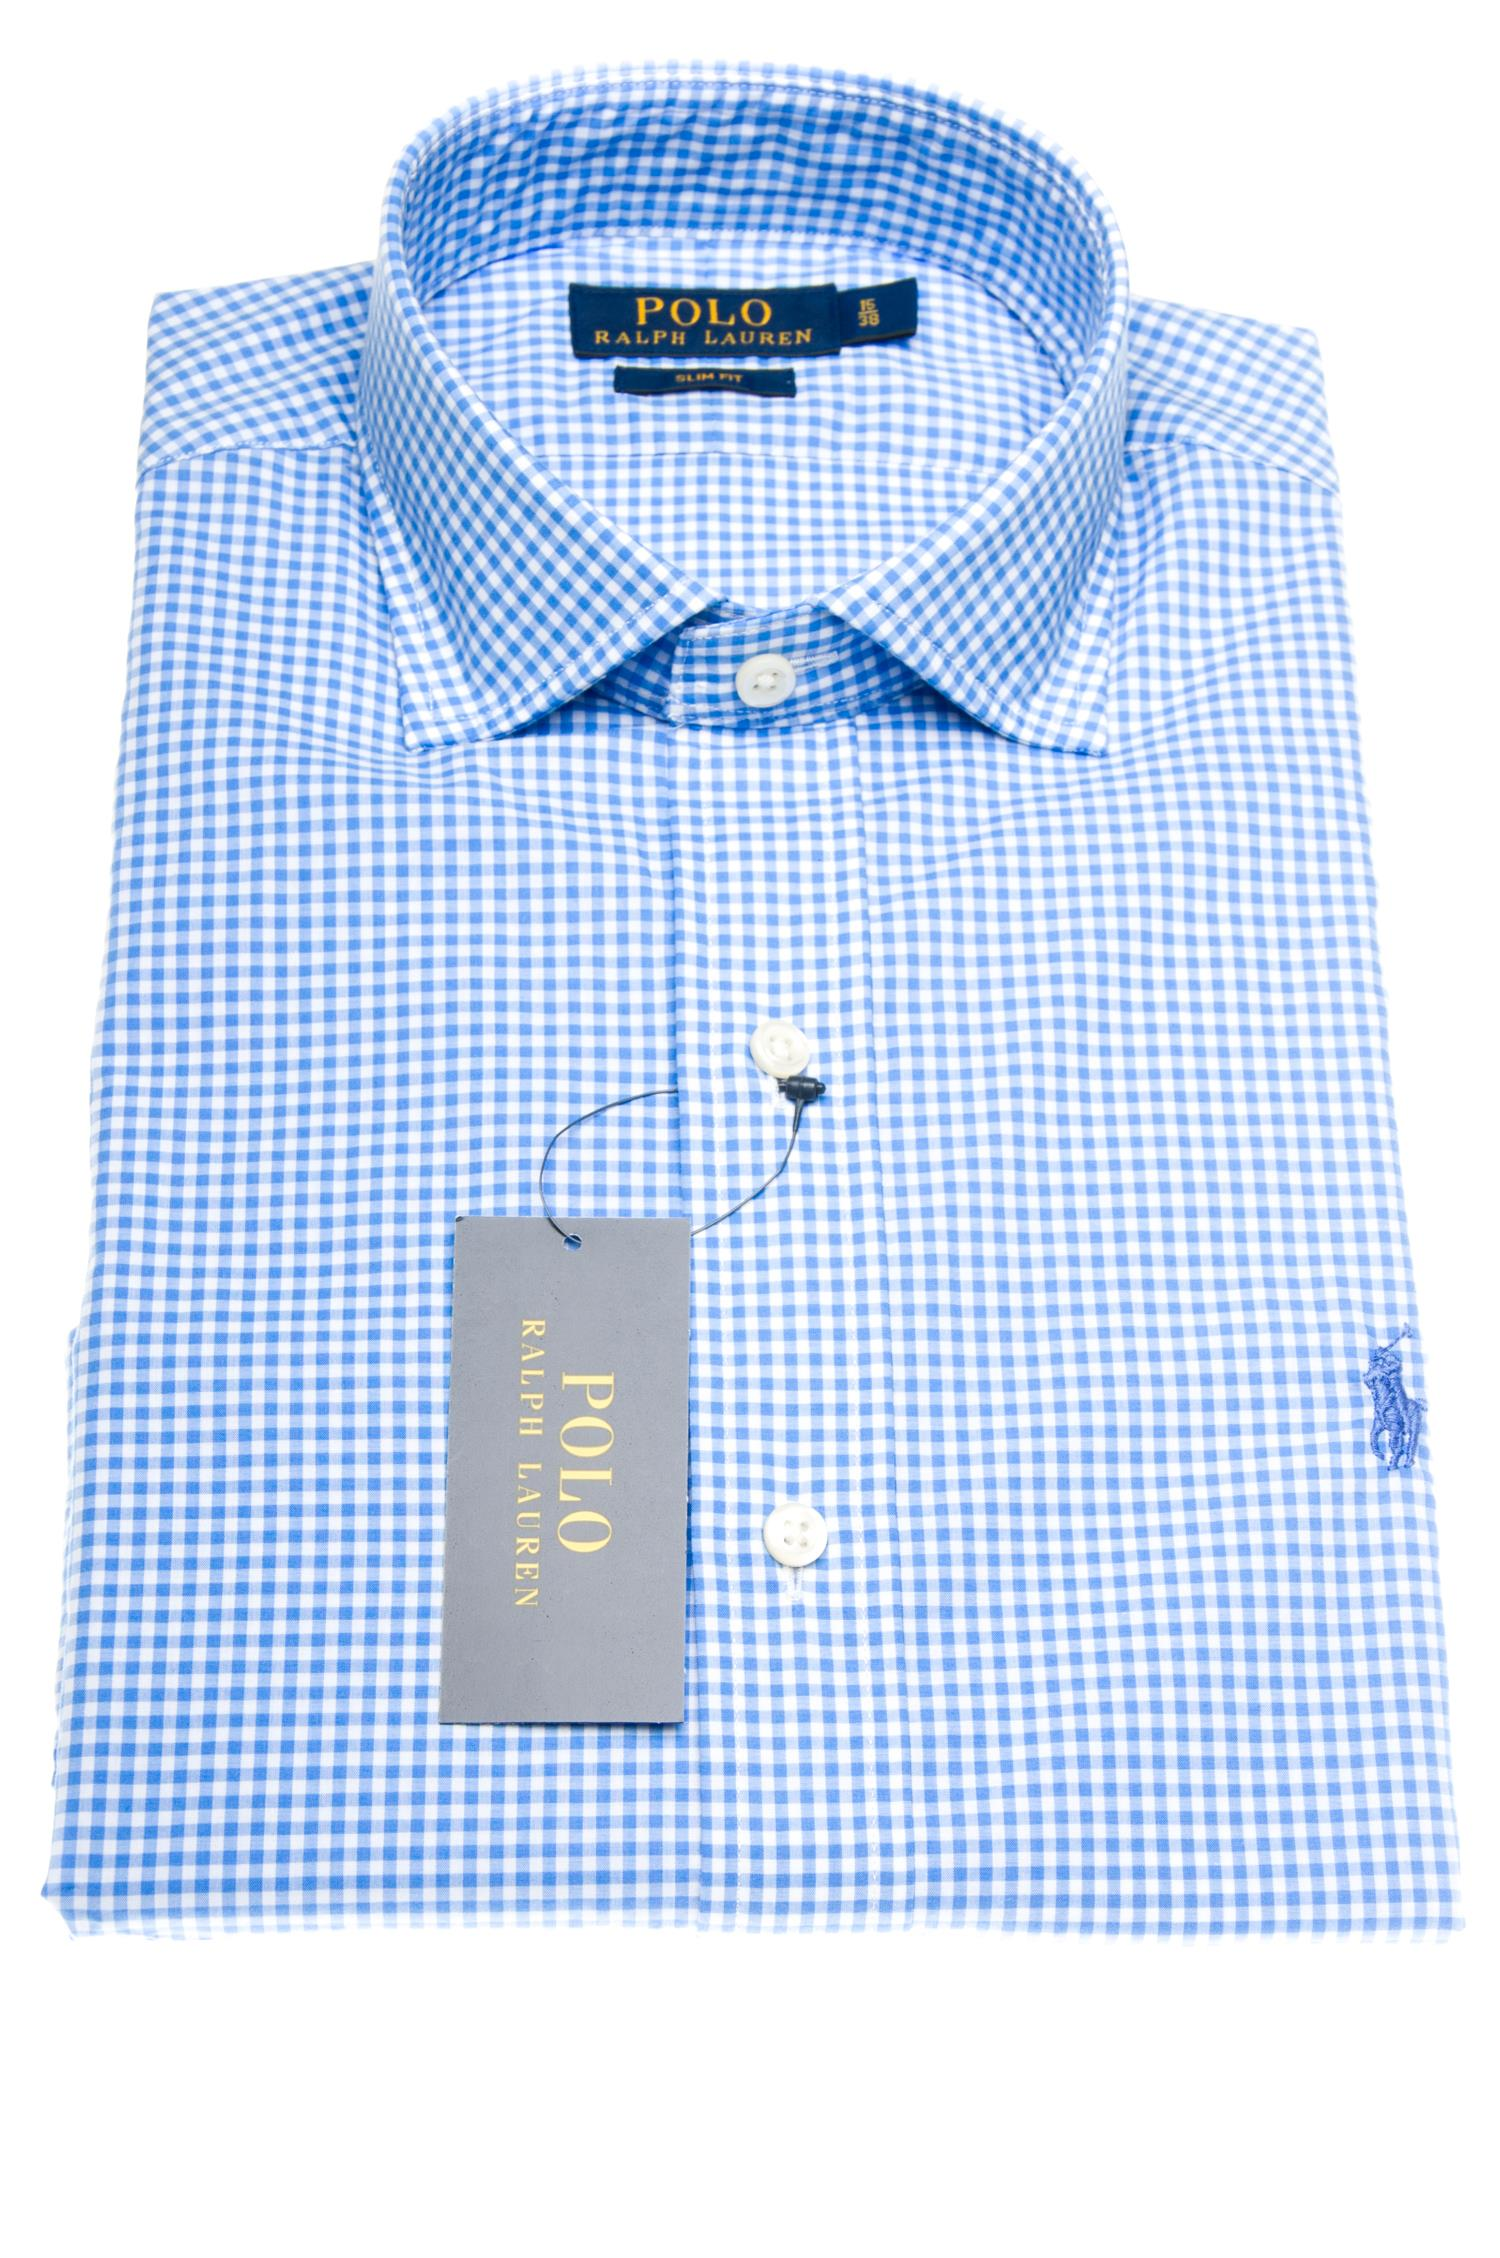 lowest price 00fa1 f4e87 Camicie Uomo ralph lauren in offerta 40%